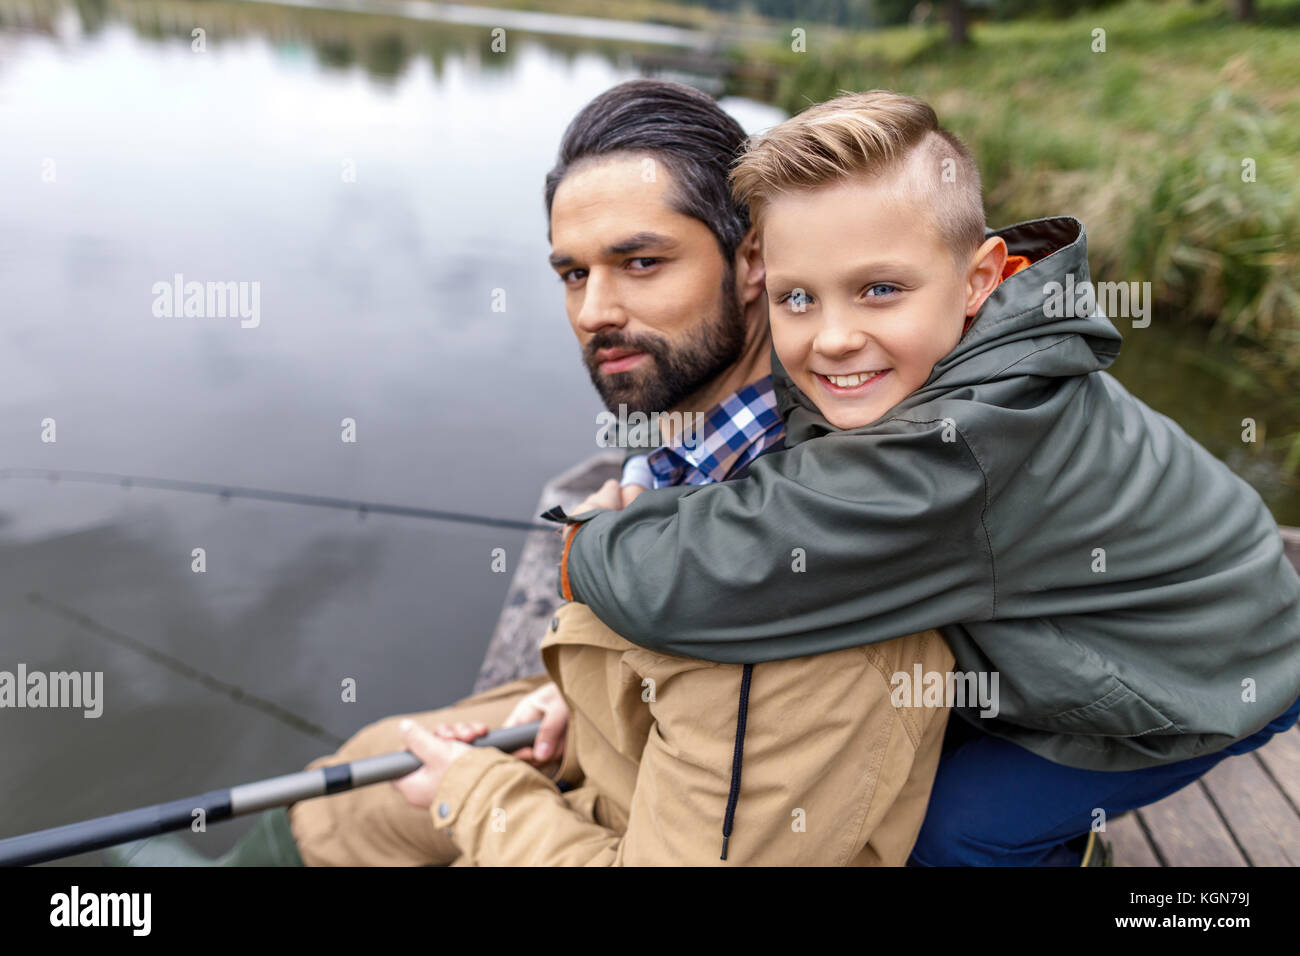 father and son fishing with rods  - Stock Image